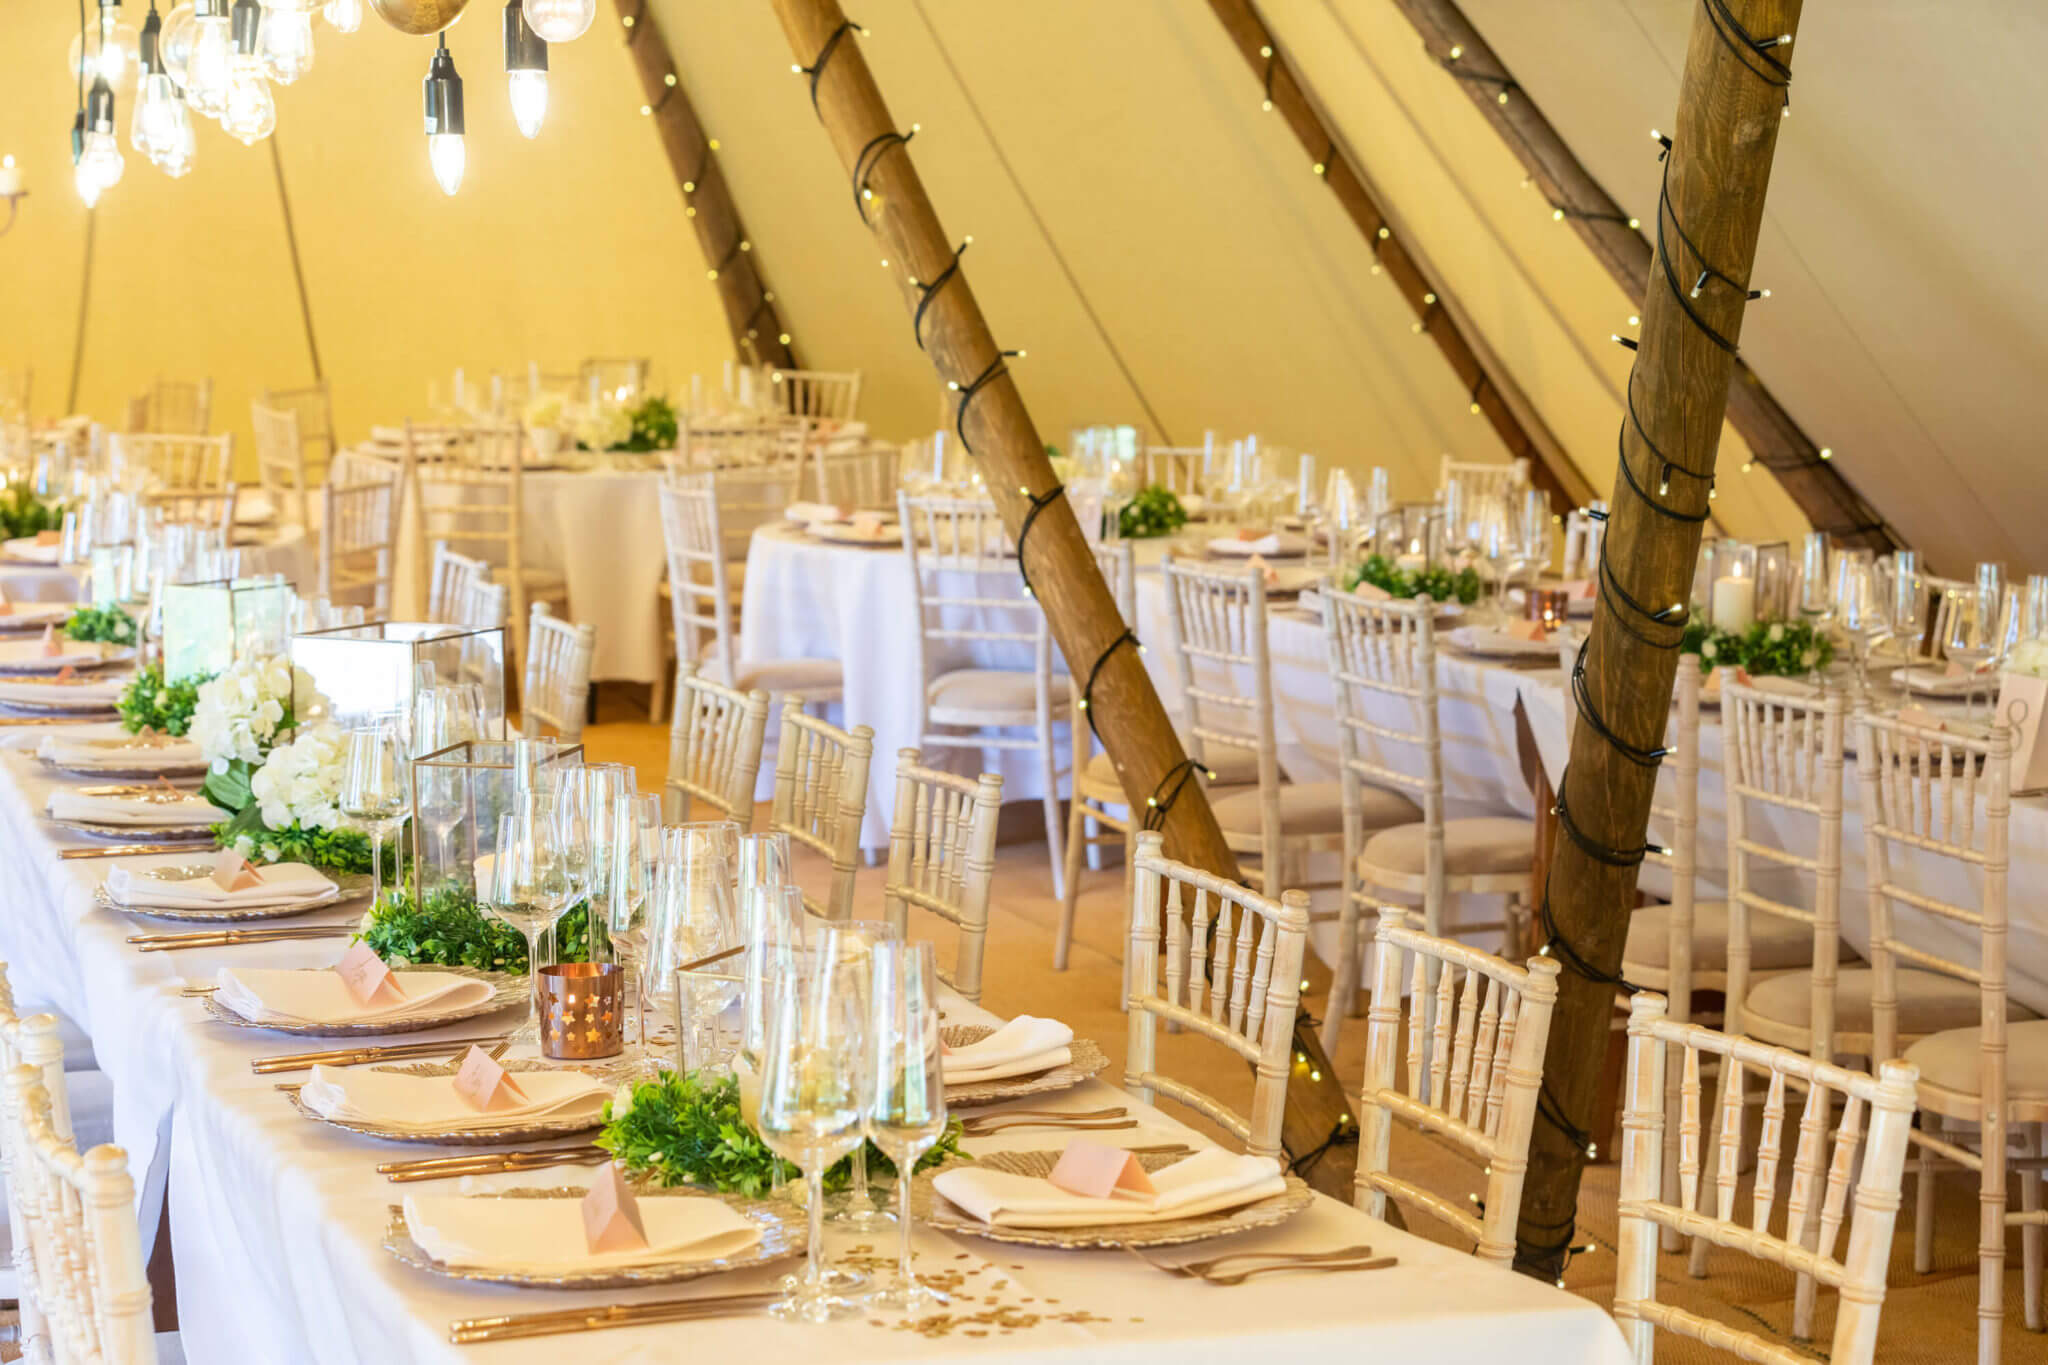 A photograph of inside a Tipi tent setup to serve dinner with fairy lights